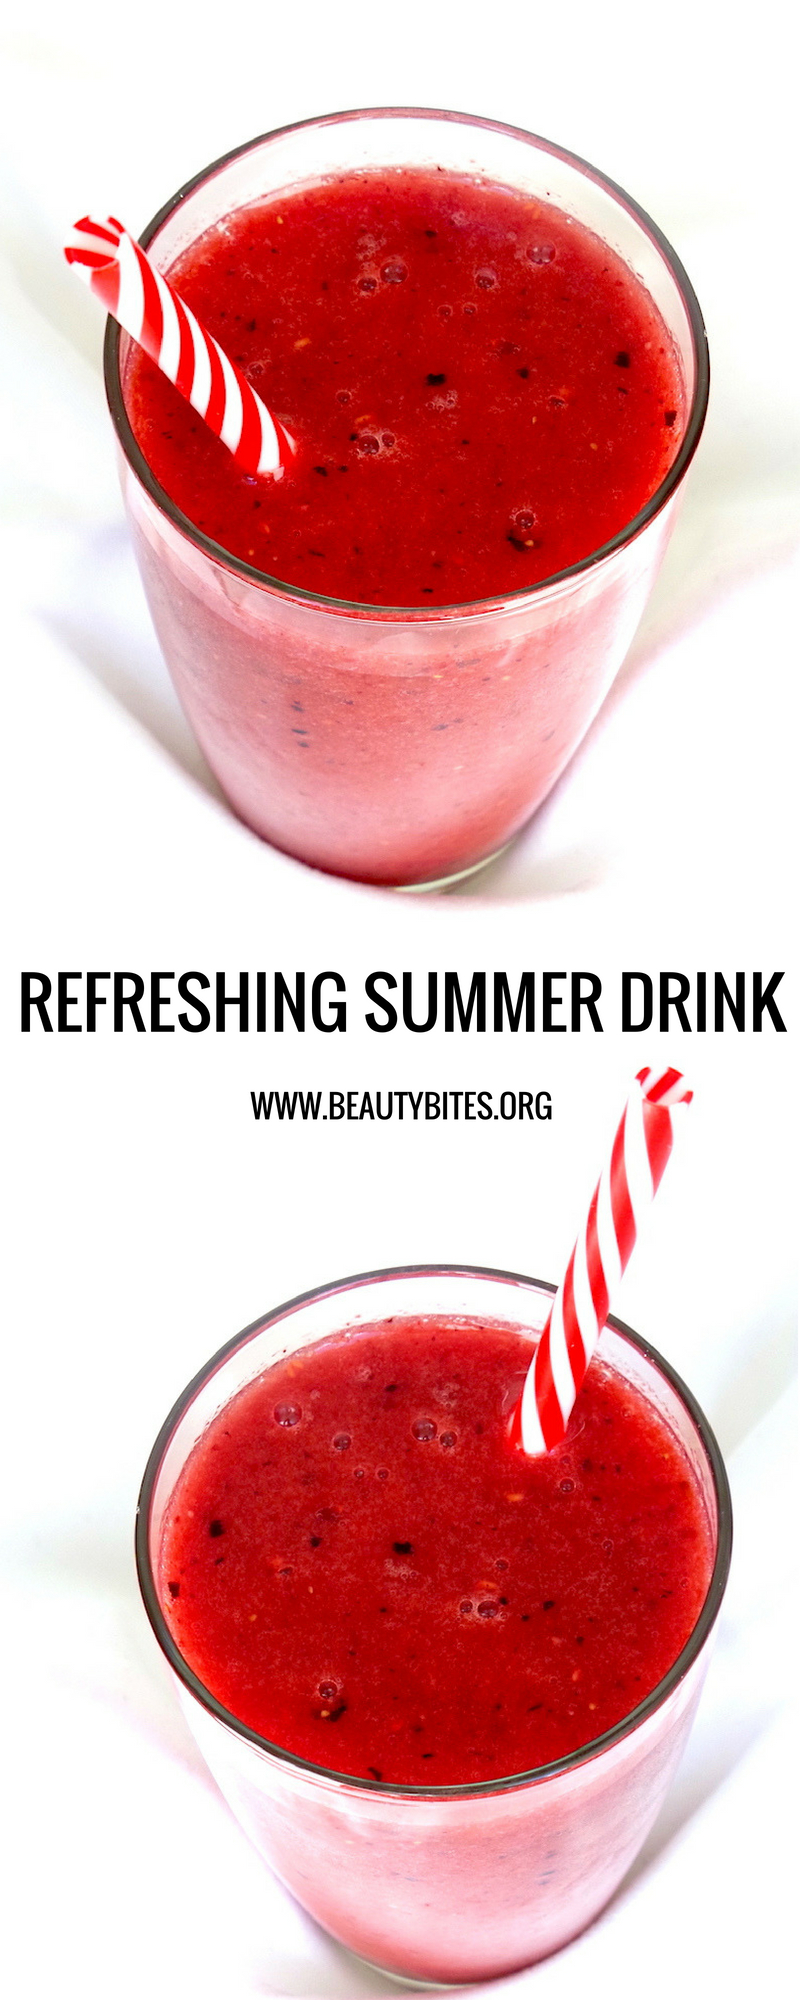 Healthy Watermelon Smoothie Recipe with Strawberries - a tasty and refreshing healthy summer drink | www.beautybites.org